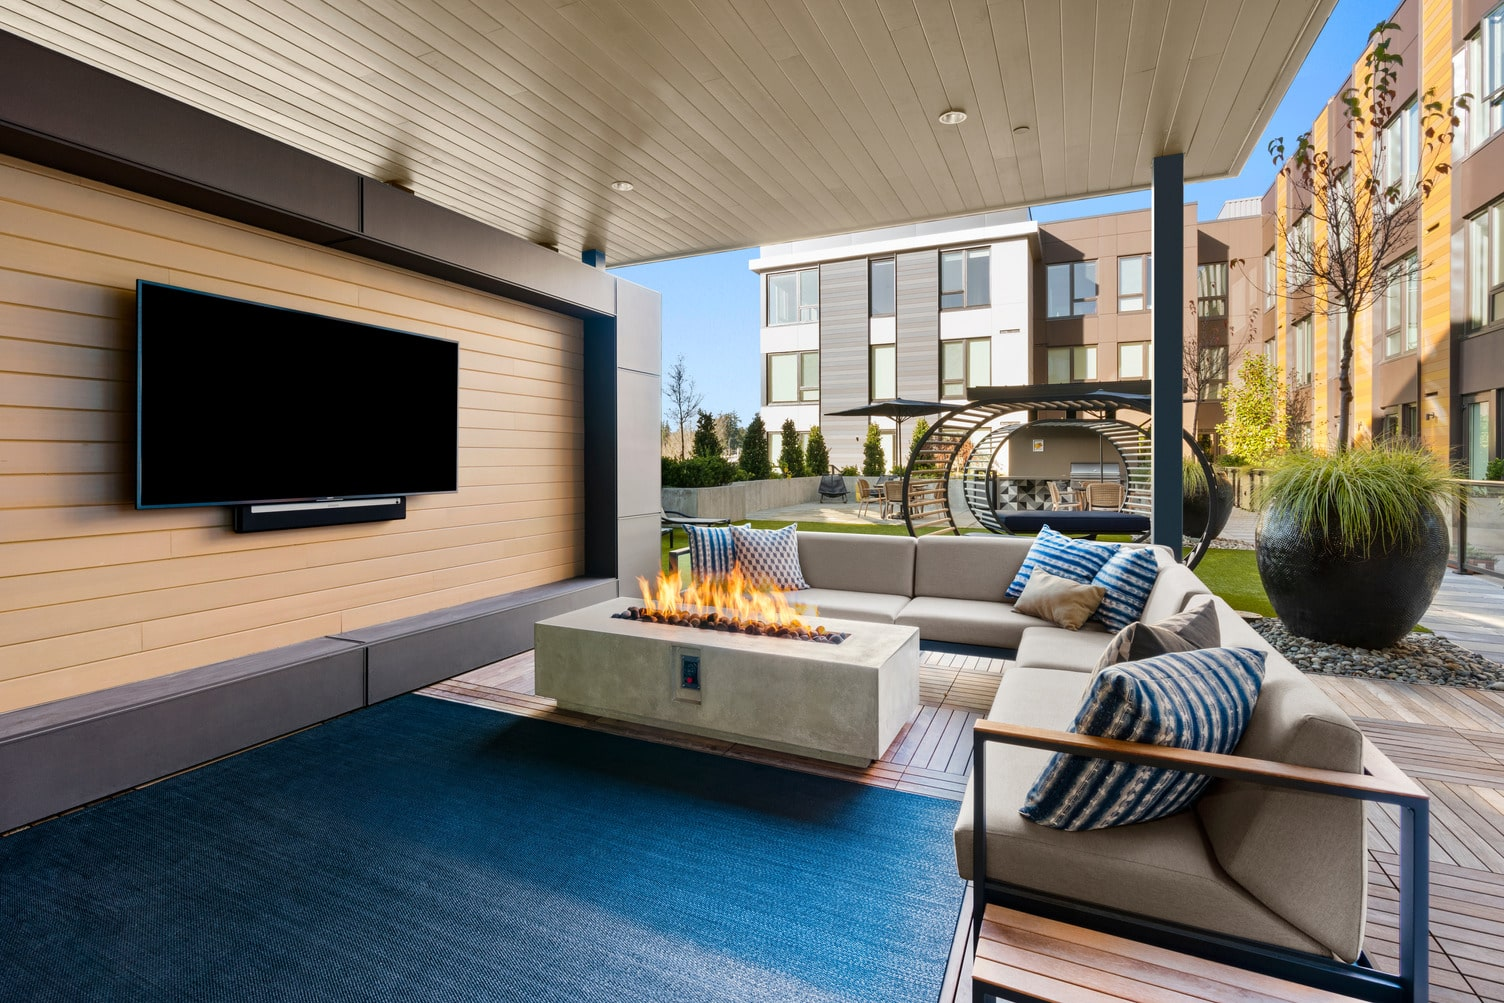 Outdoor courtyard featuring patio and grass areas with lounge seating, dining tables with umbrella coverings, and a covered grill.